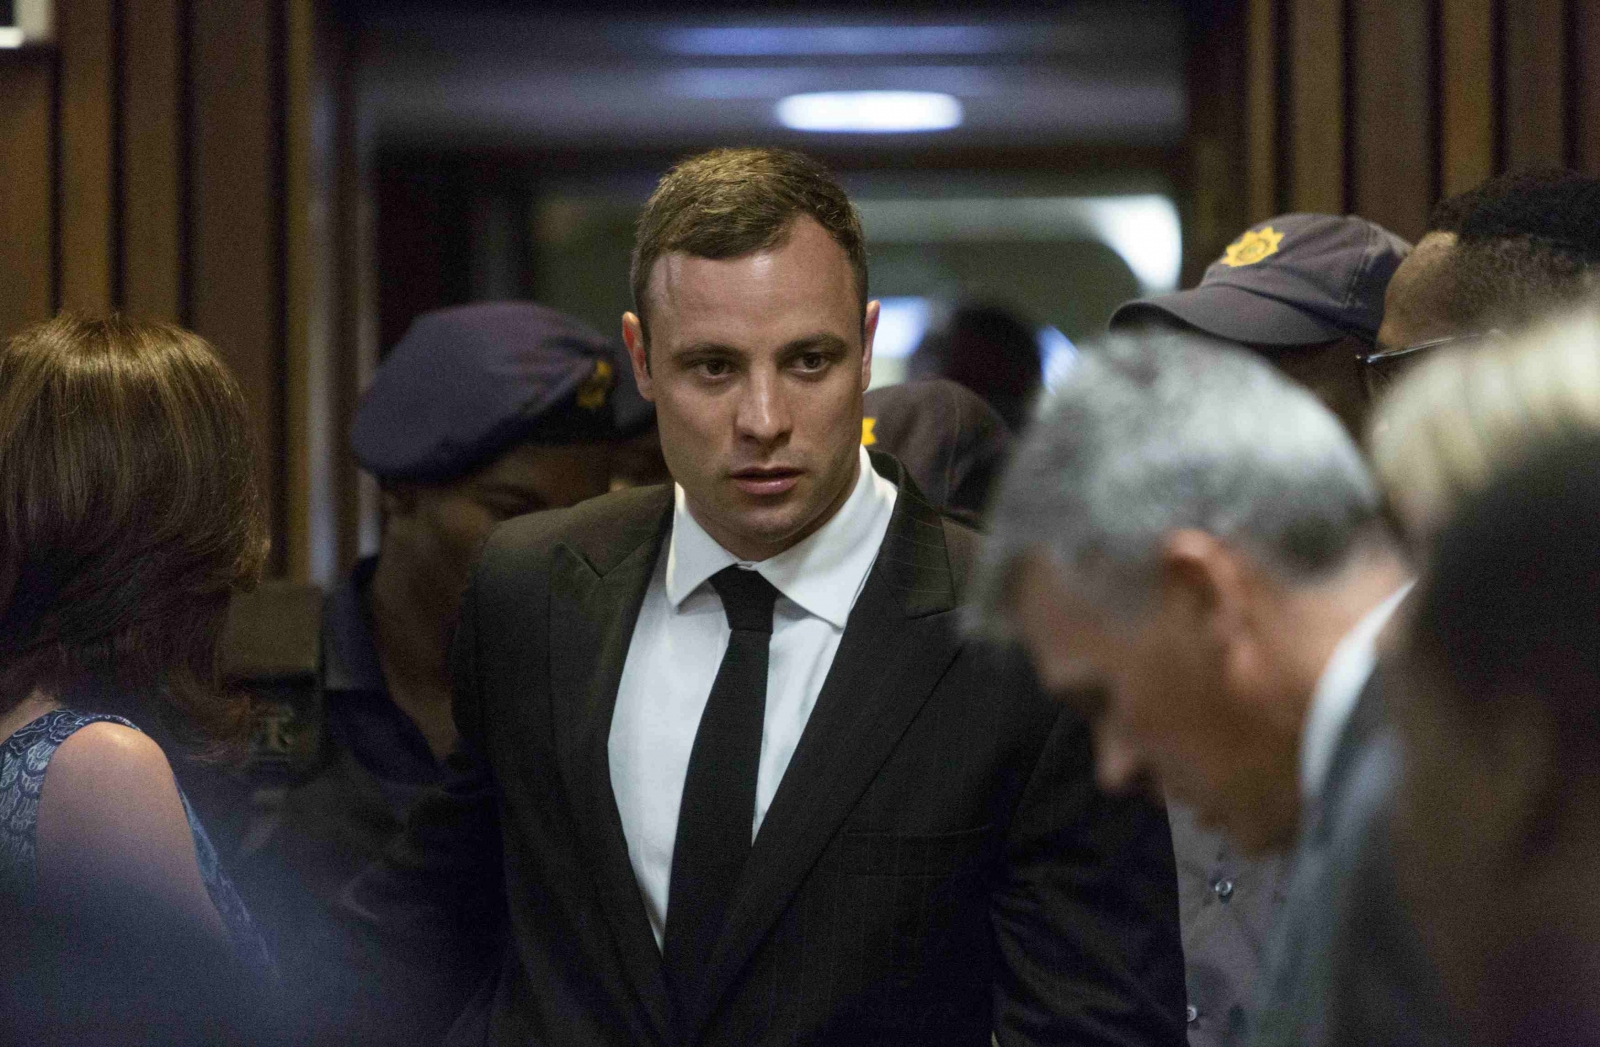 Oscar Pistorius Faces up to 15 Years in Prison at Sentencing